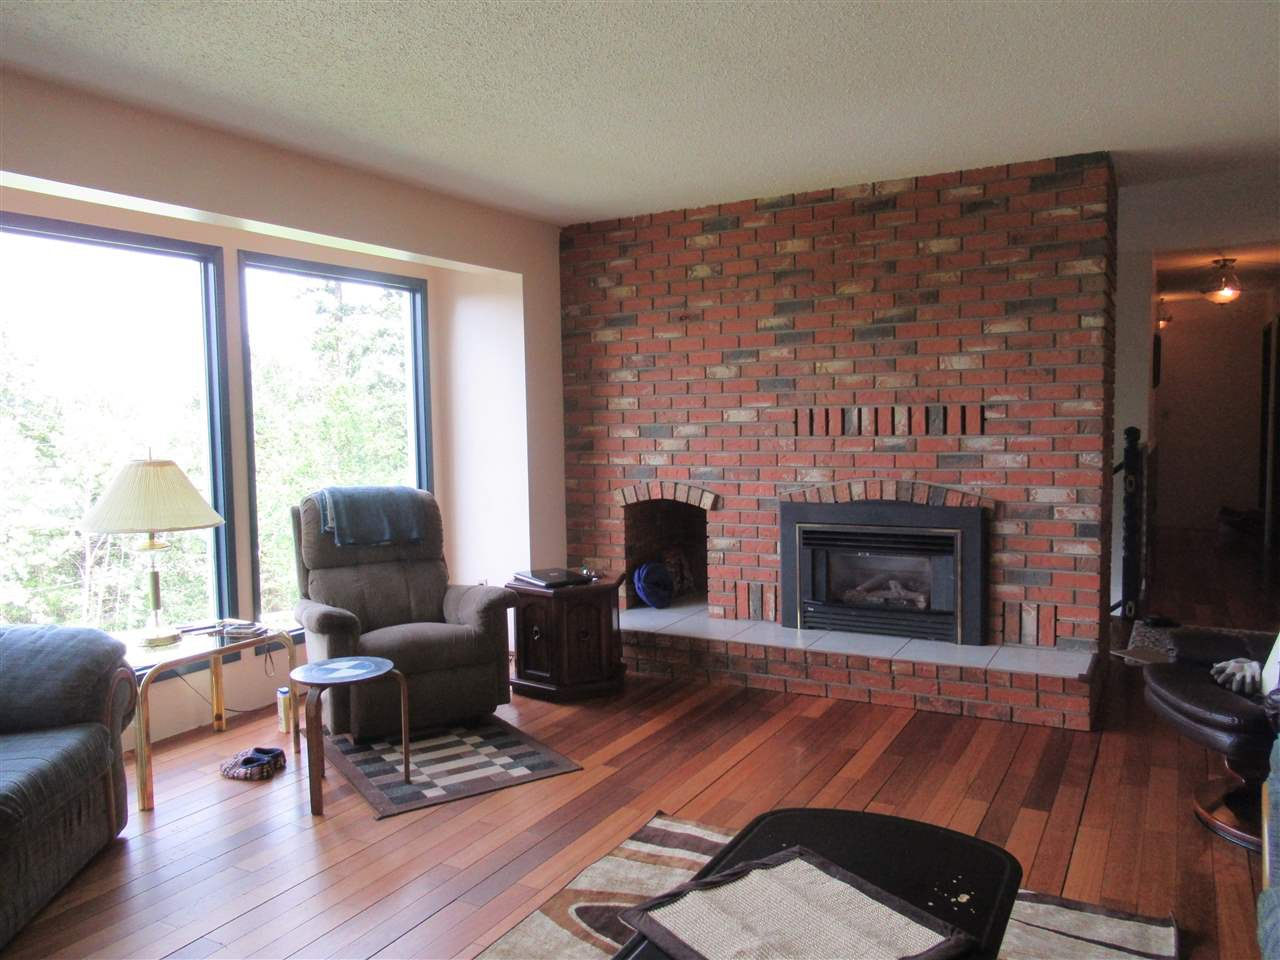 Photo 5: Photos: 607 ROBERTS Drive in Williams Lake: Esler/Dog Creek House for sale (Williams Lake (Zone 27))  : MLS®# R2391926